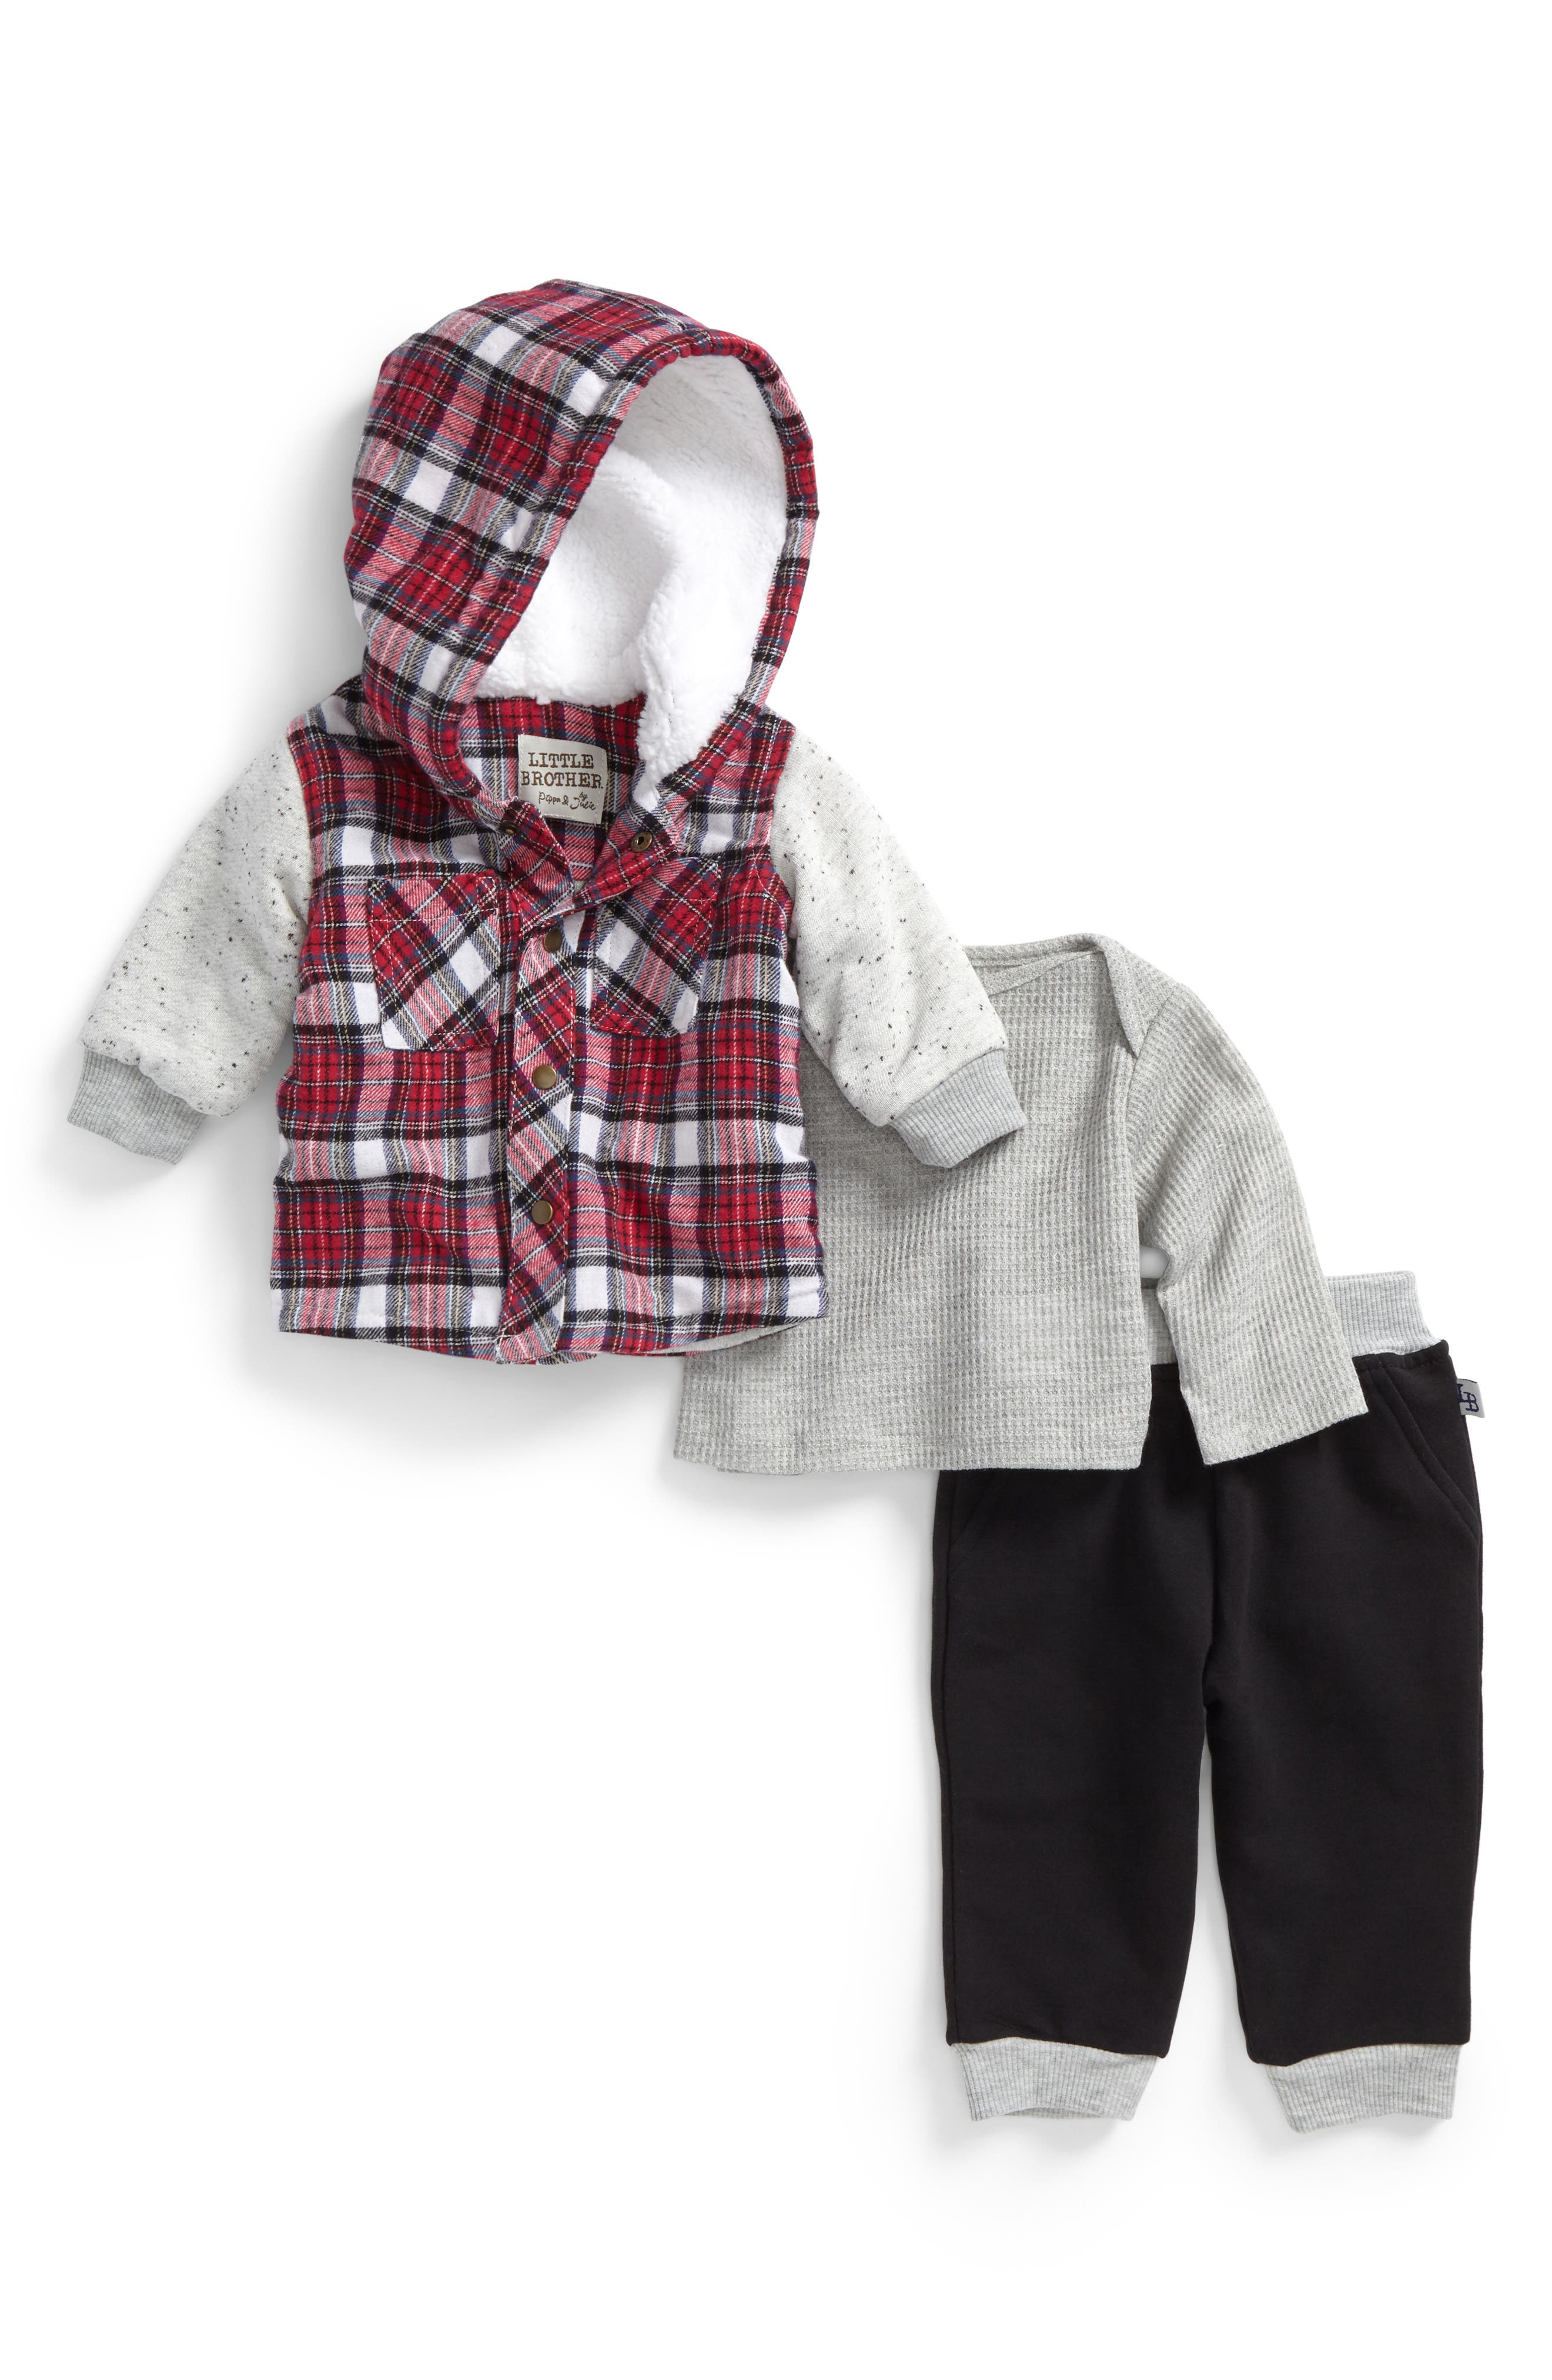 Alternate Image 1 Selected - Little Brother by Pippa & Julie Hooded Jacket, Knit Top & Sweatpants Set (Baby Boys)